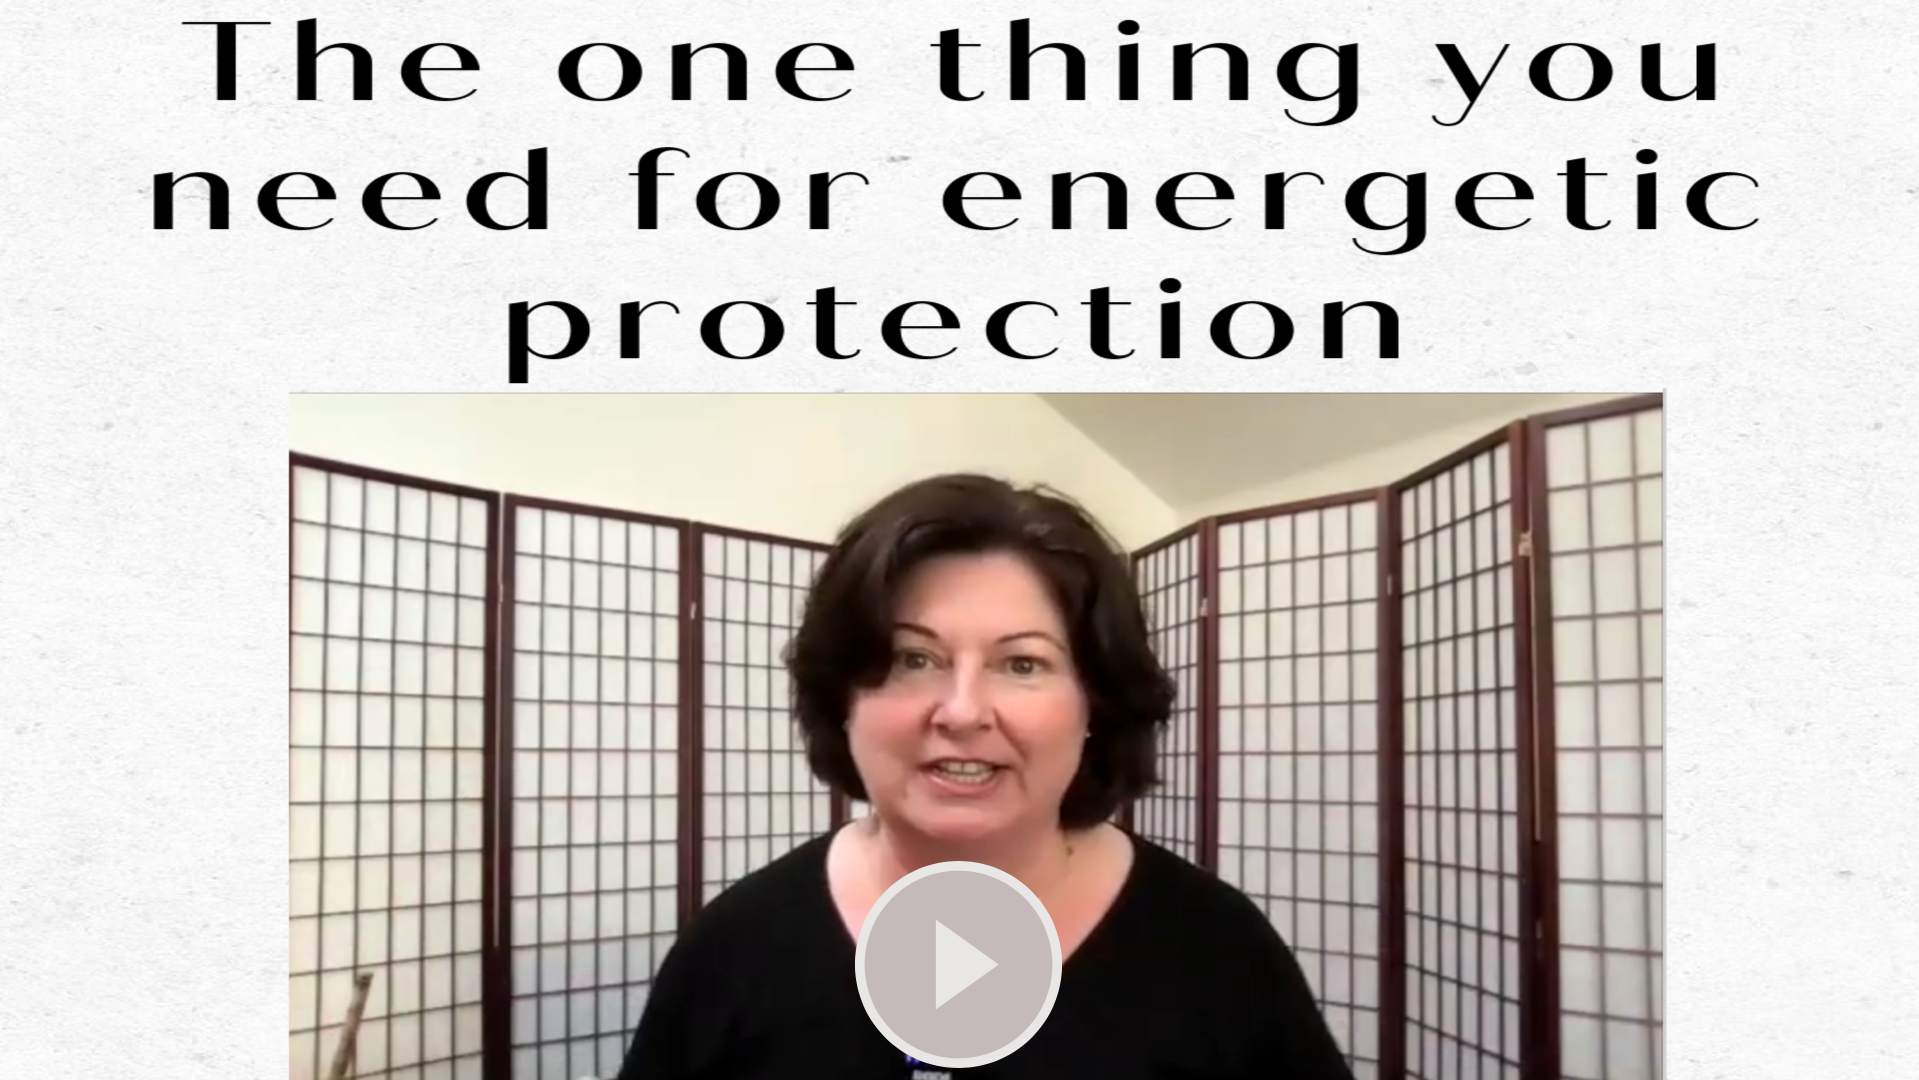 The one thing you need for energetic protection Maria Furlano Instagram